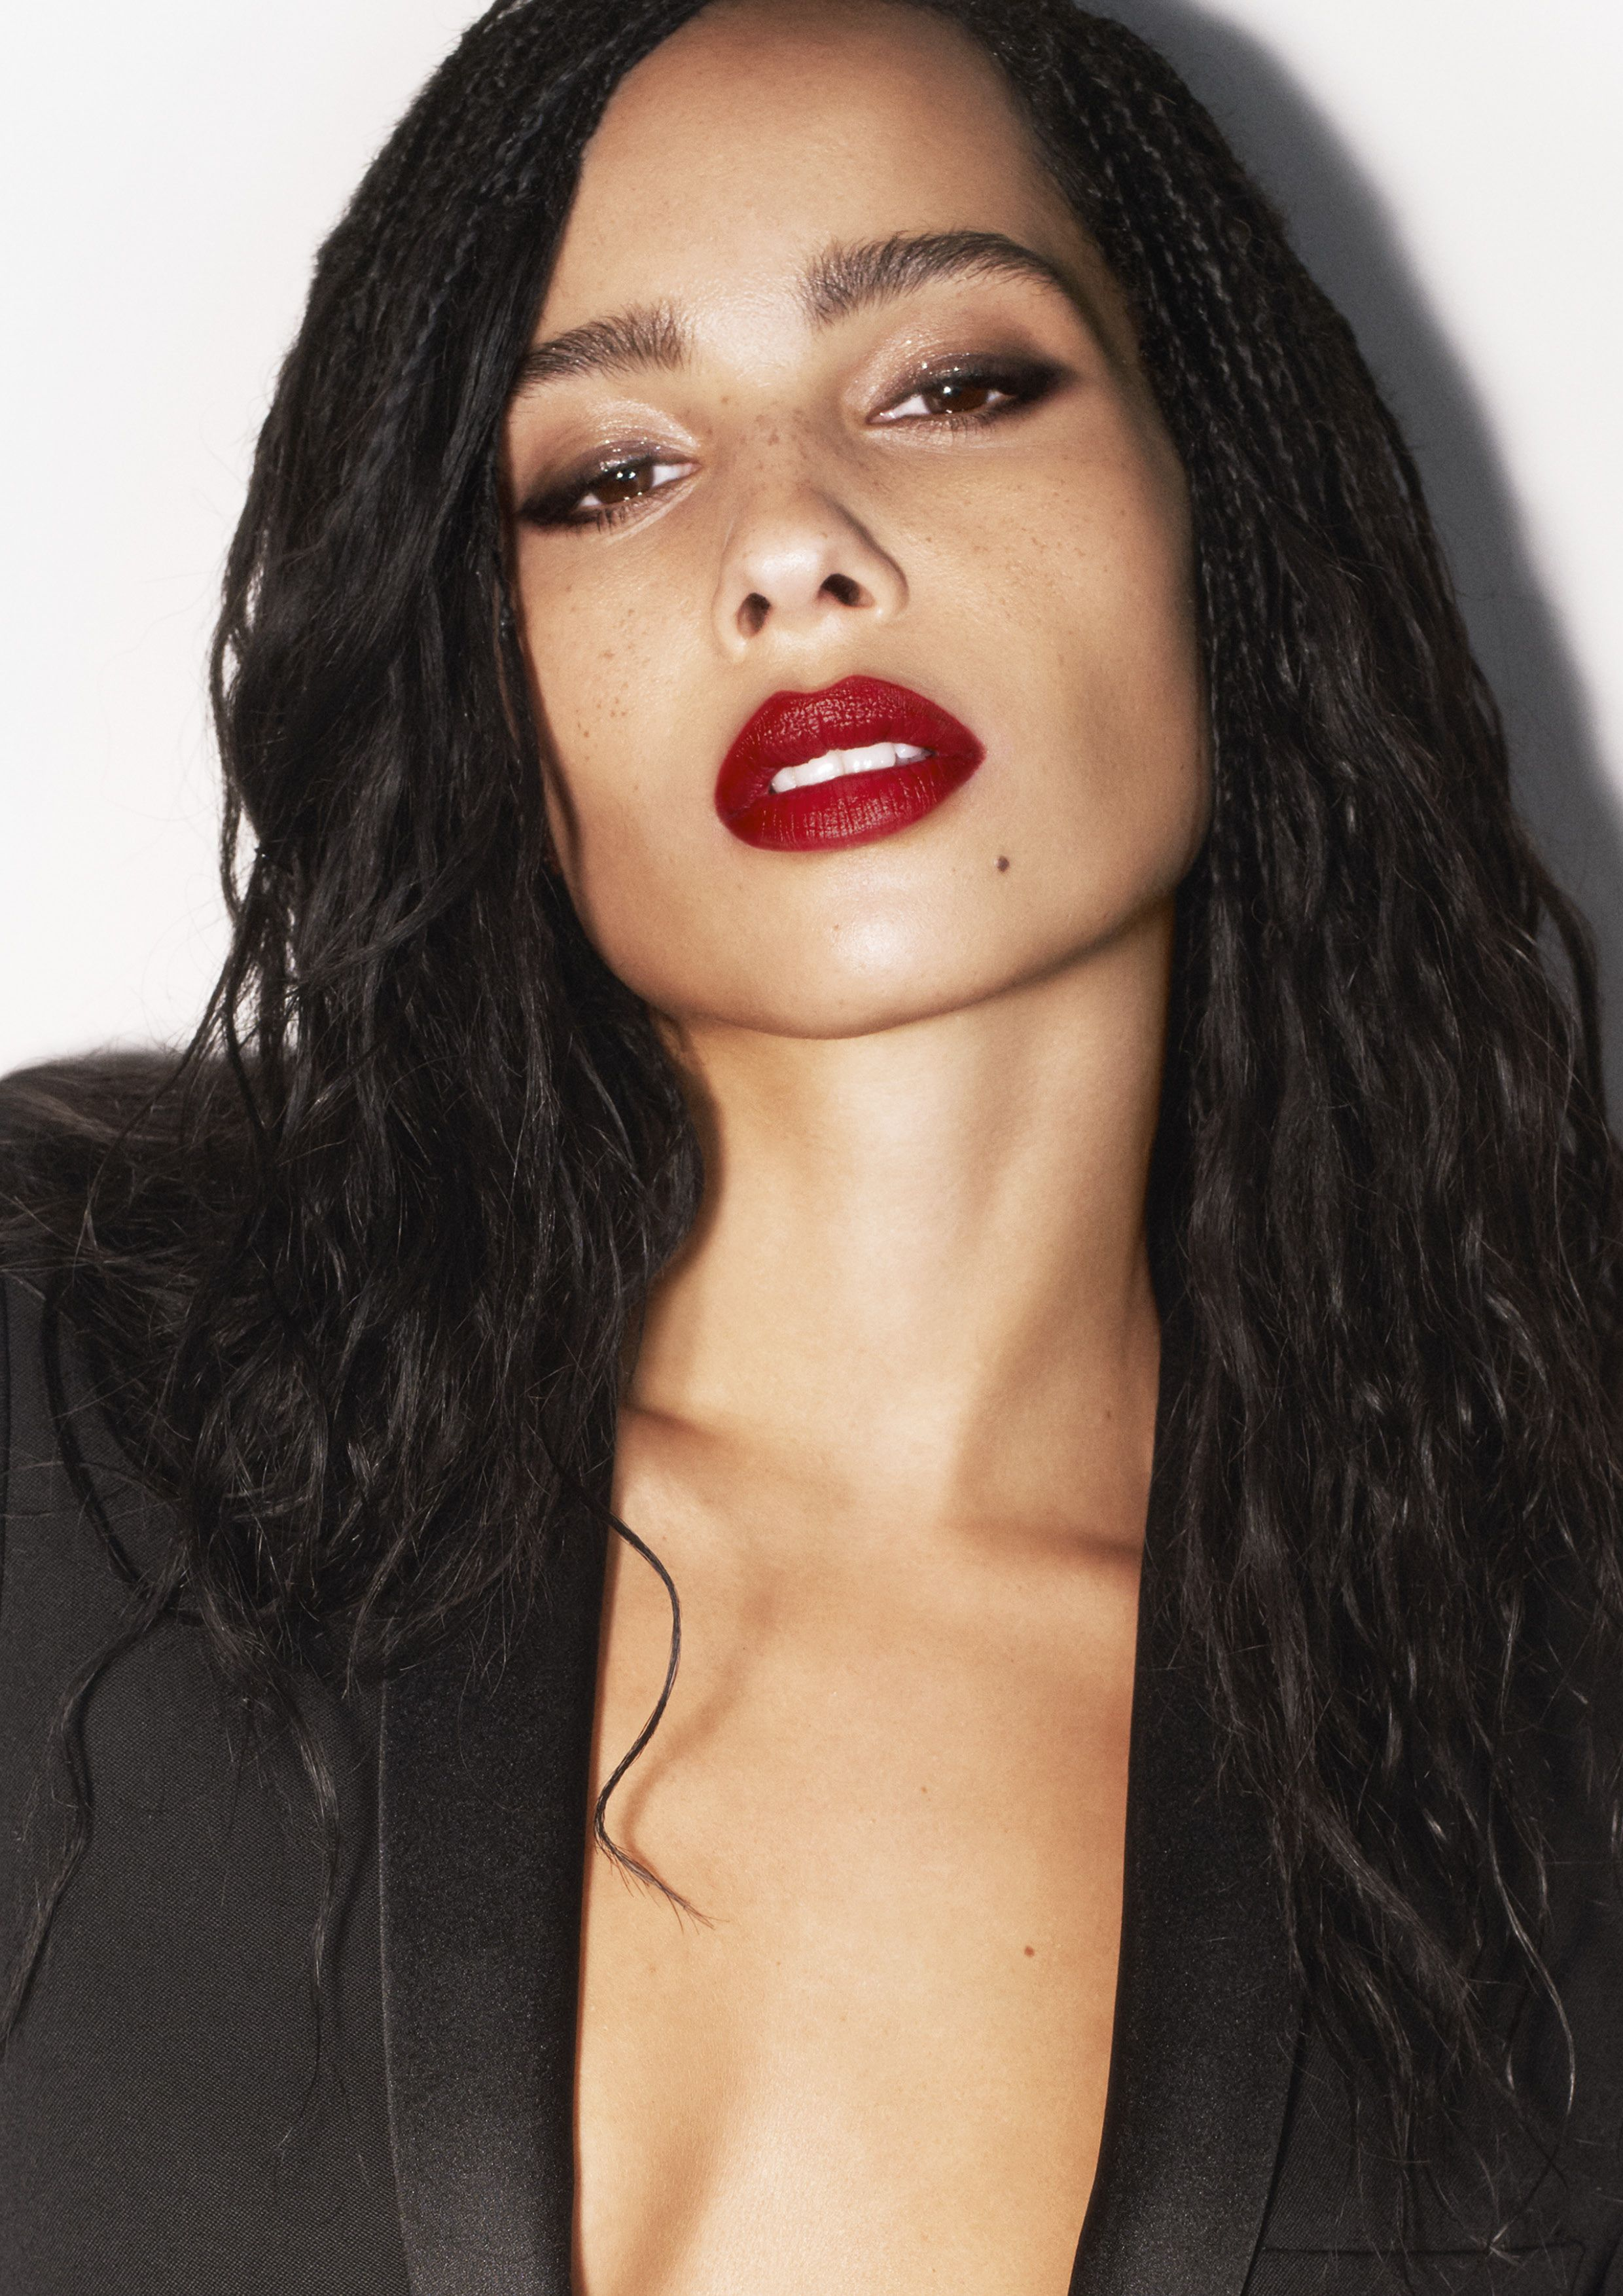 Zoë Kravitz Has a New Lipstick Line With YSL Beauty and Told Me All the Details